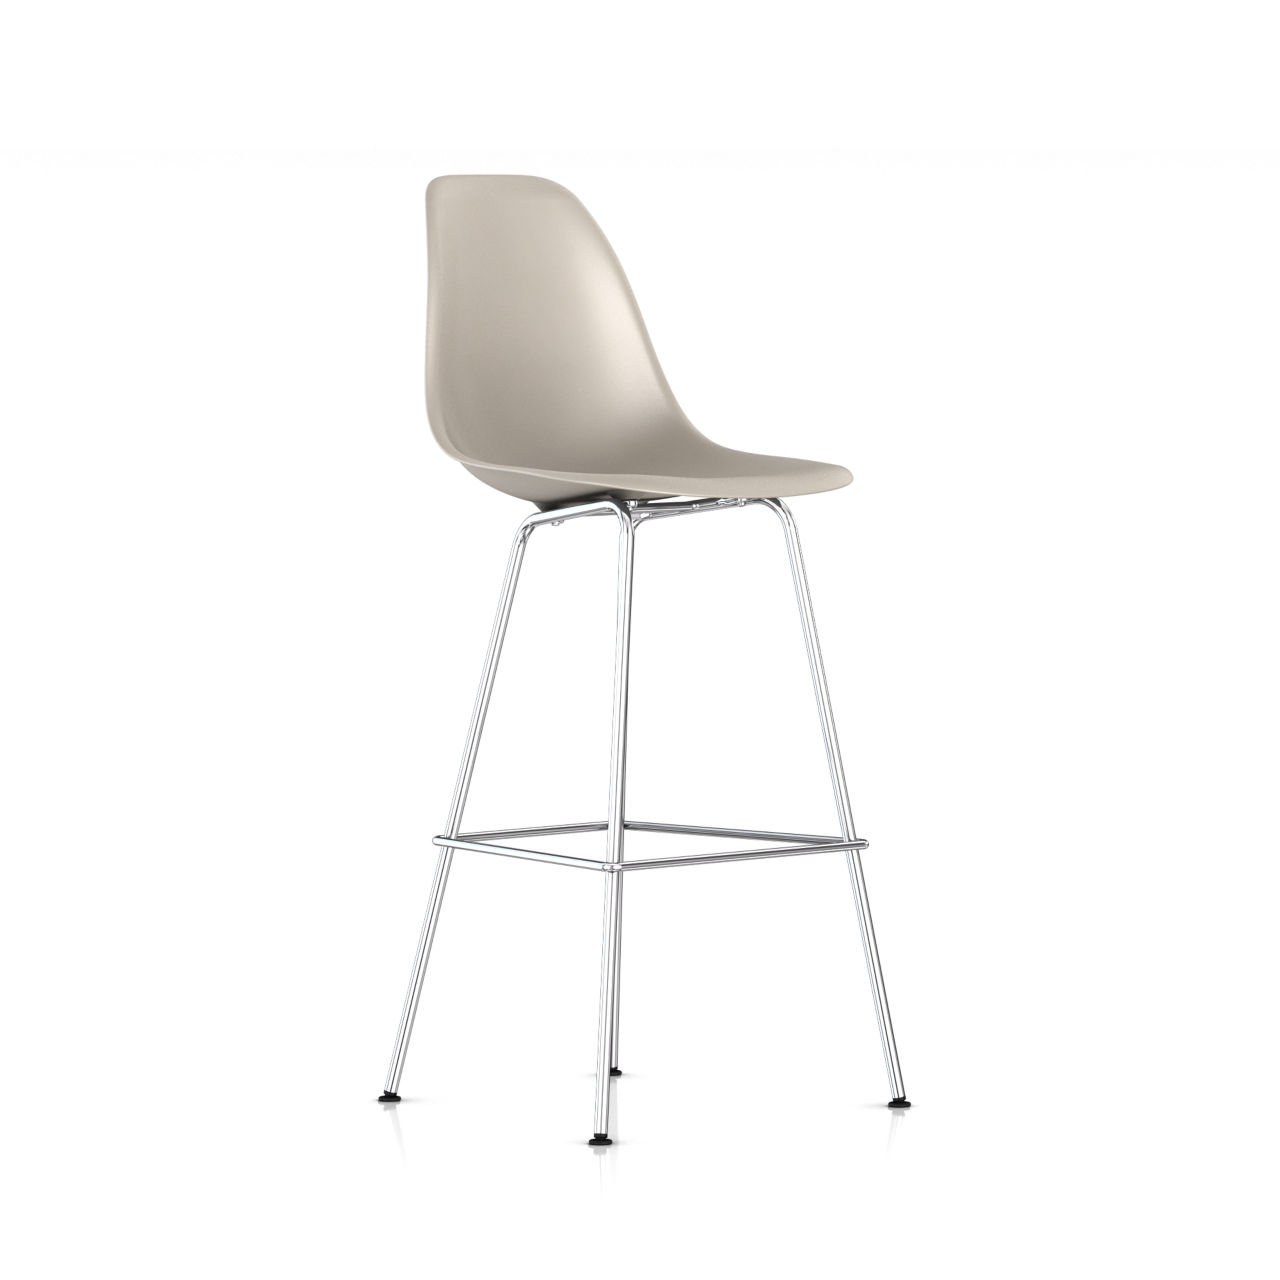 Eames Molded Plastic Bar Stool in Stone by Herman Miller